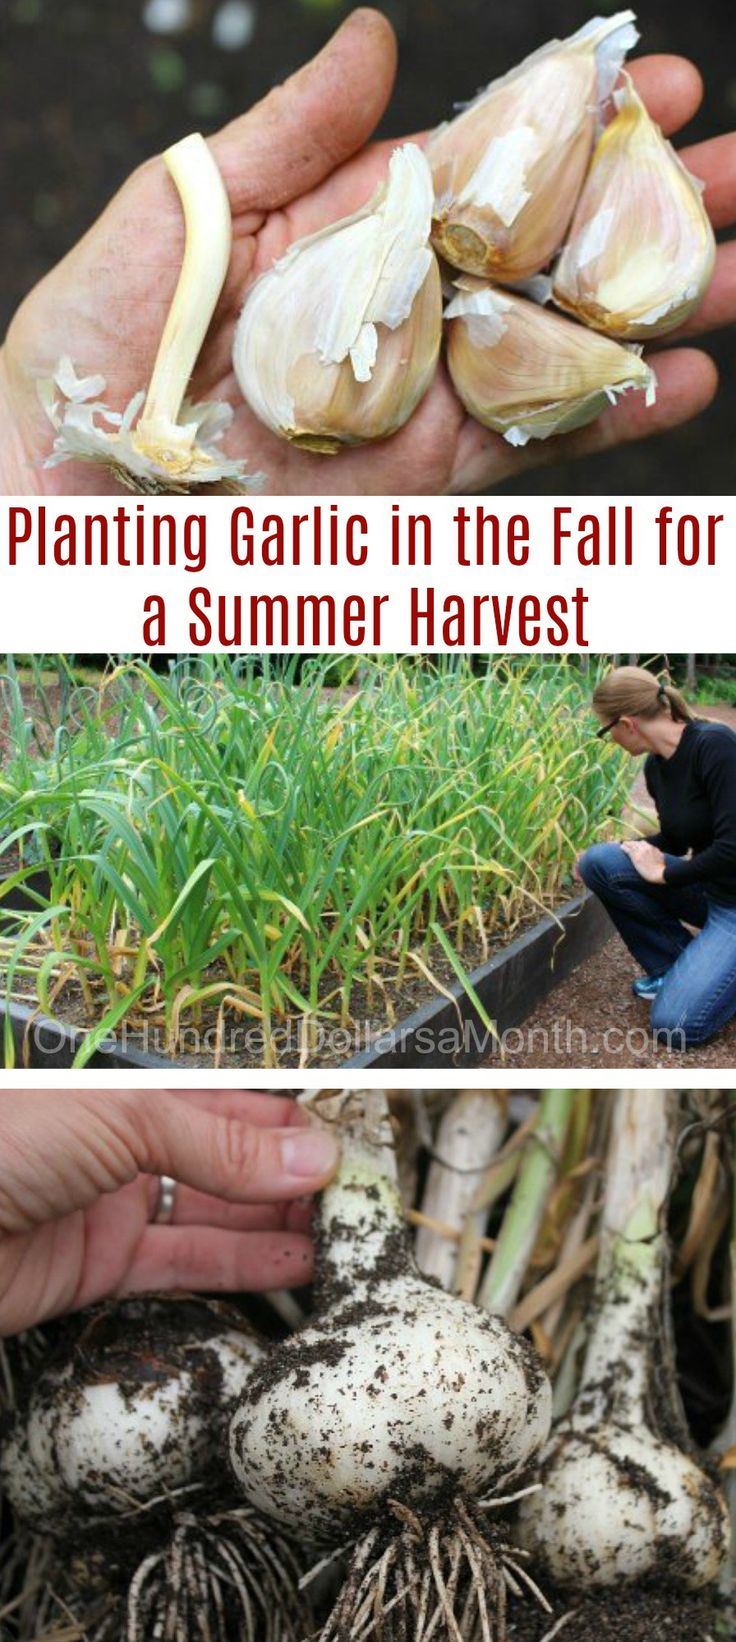 It's that time of year again…or, if you have never tried growing garlic, it's time to start. Garlic is RIDICULOUSLY easy to grow, and it overwinters, so it doesn't really take up too much time or precious space in your garden boxes. Growing garlic is very simple and straightforward. For starters you want to try …